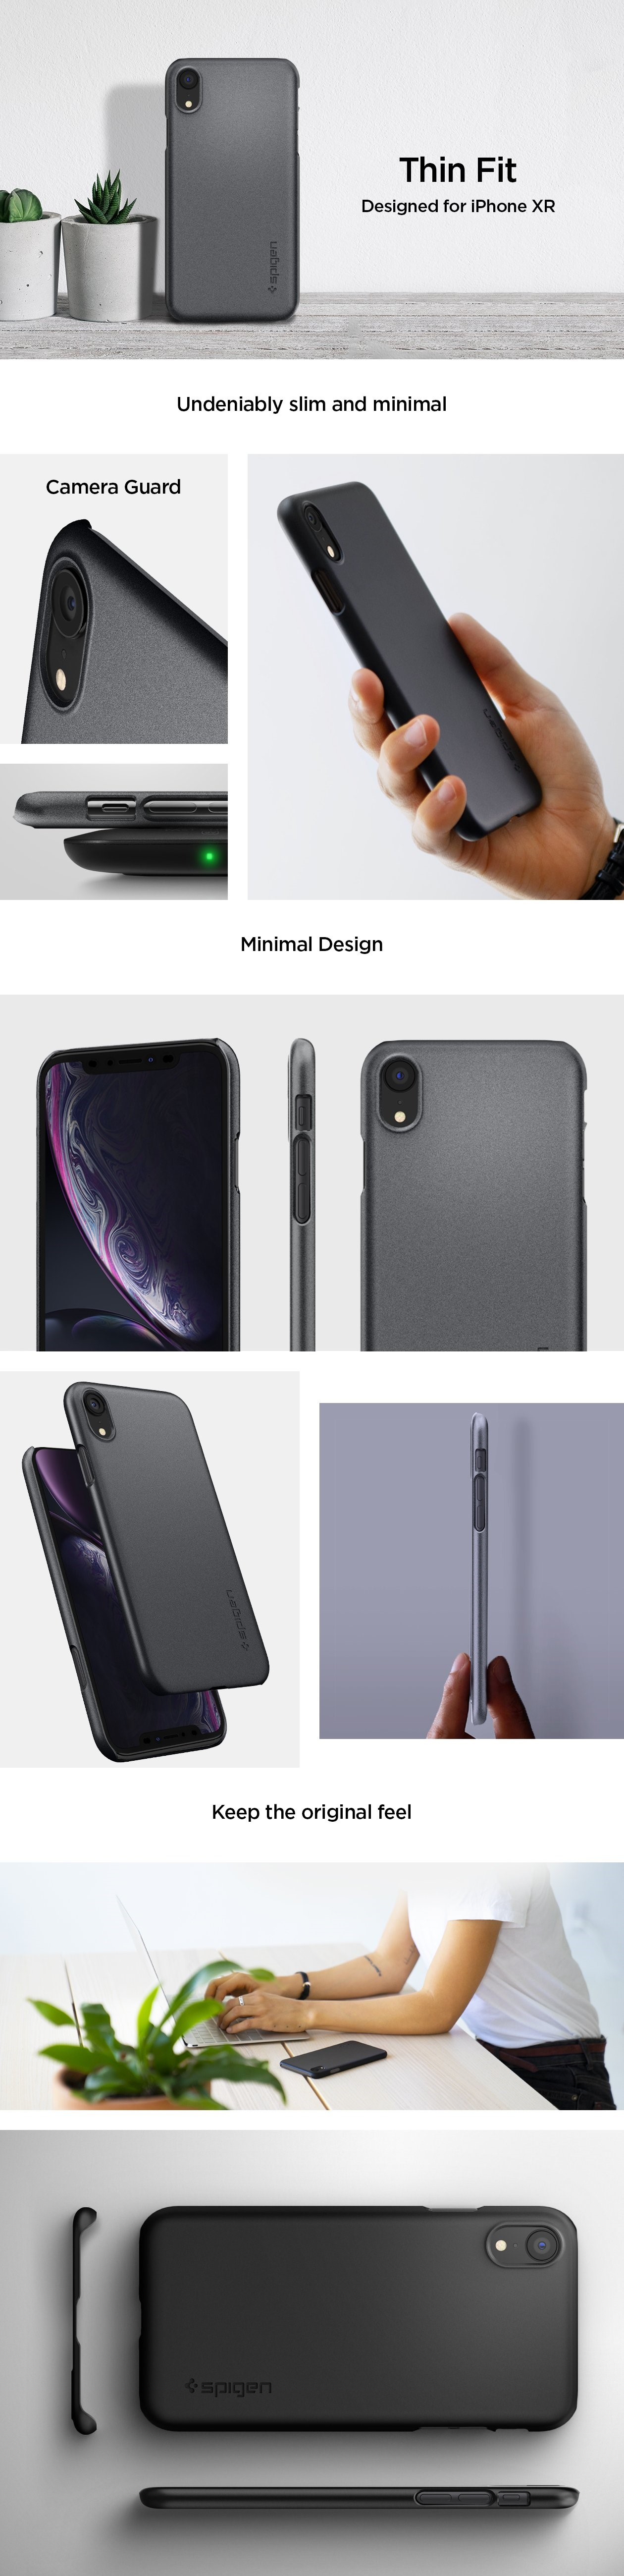 SPIGEN Silicone Fit Iphone XR Graphite Gray (064CS24865)